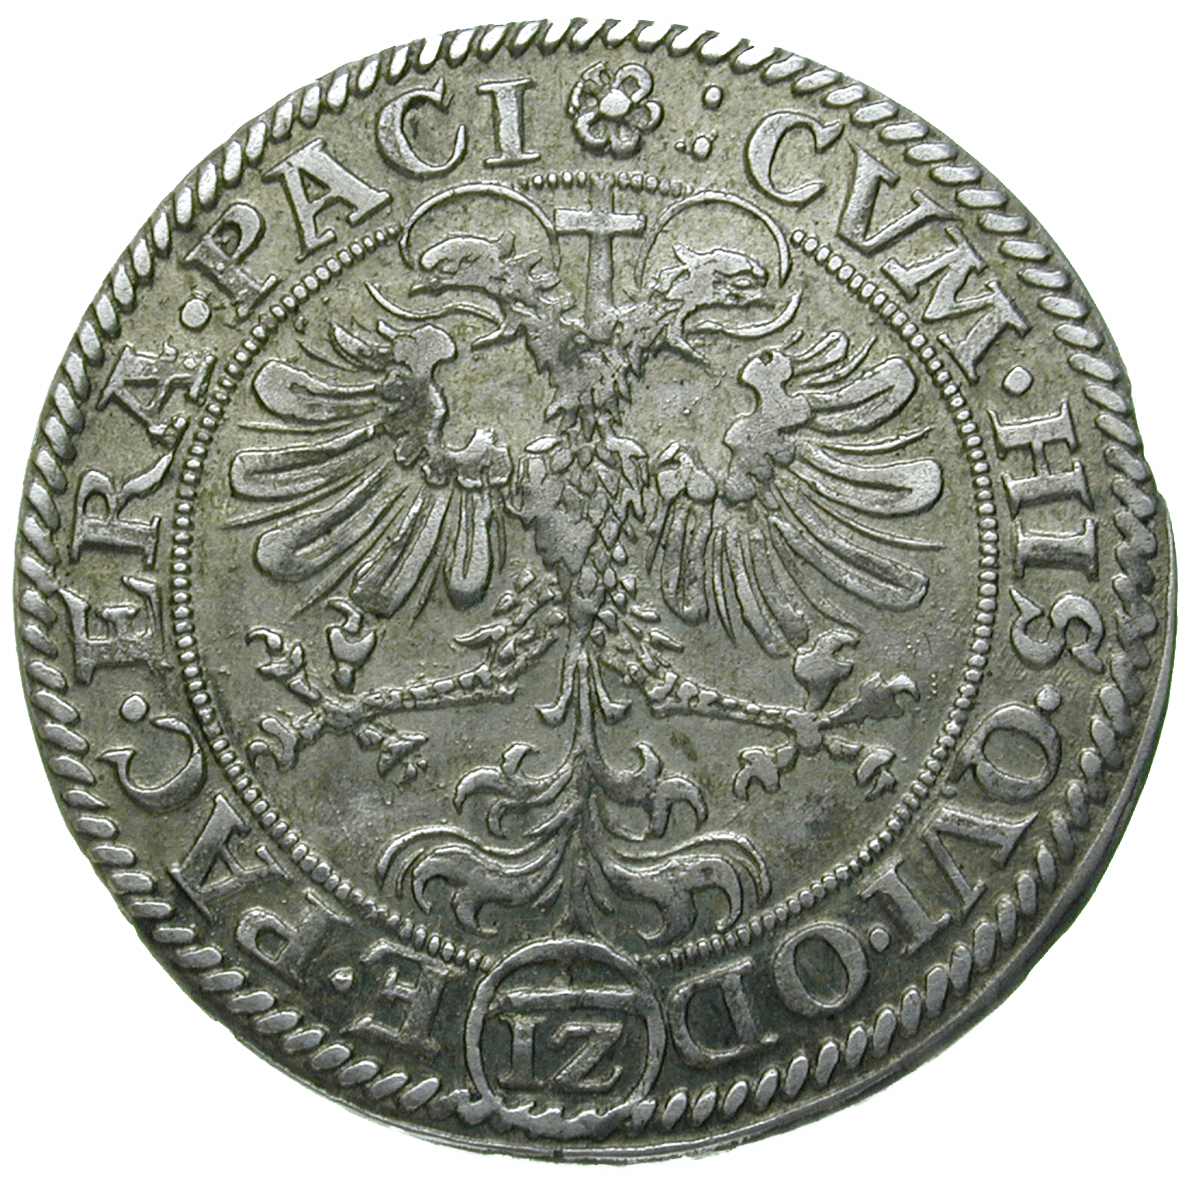 Holy Roman Empire, City of Zug, 1 Zwölfer (reverse)